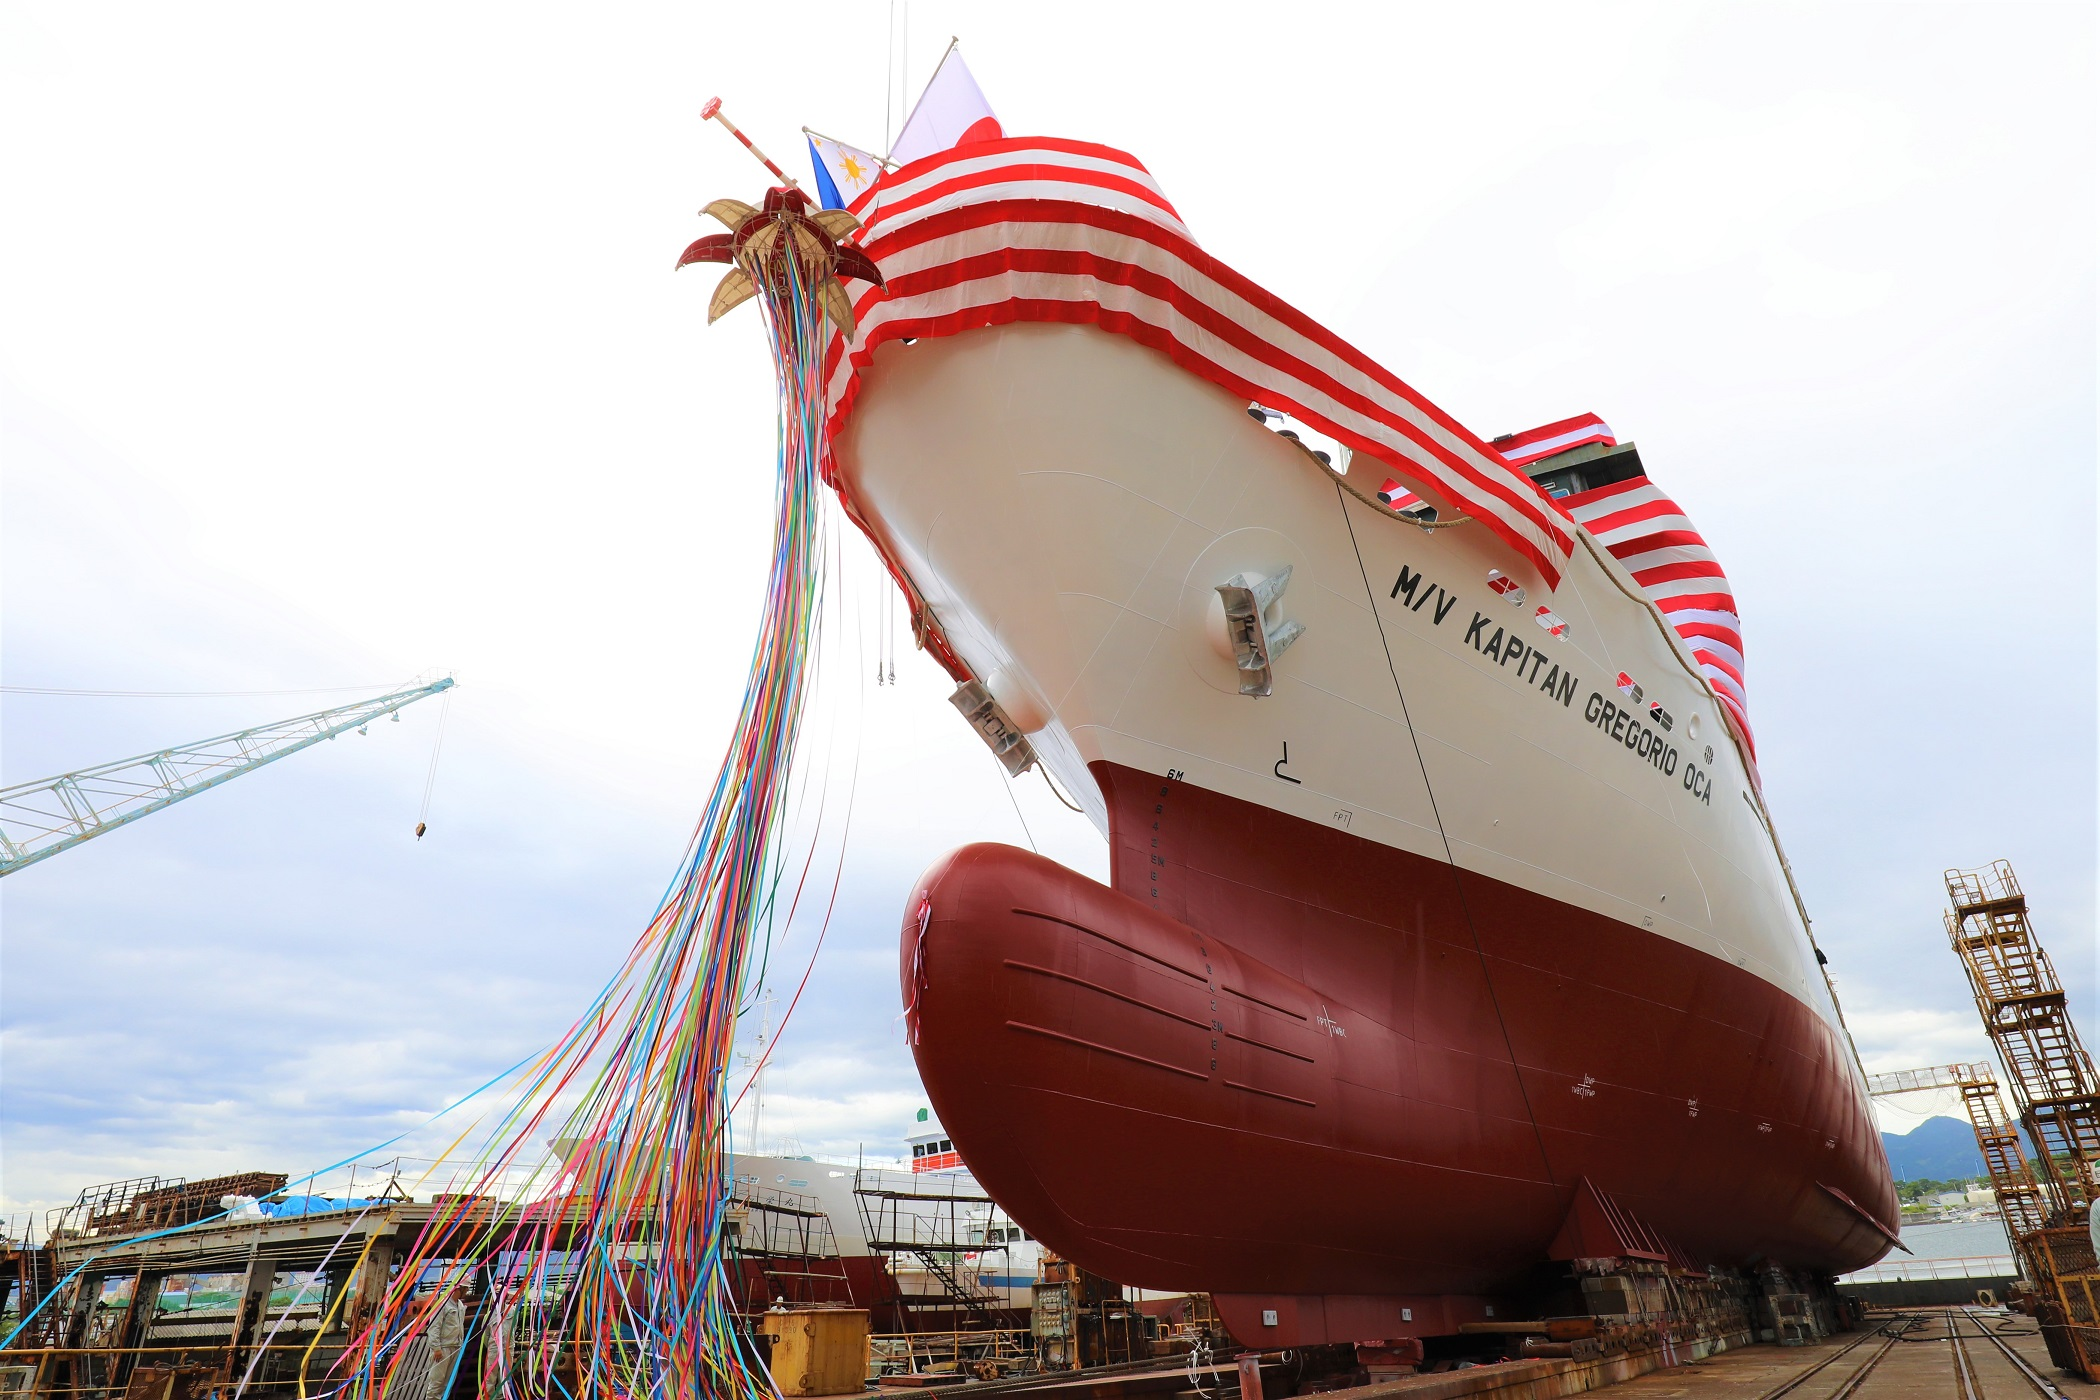 MIHO SHIPYARD Launches 70M-type Training Vessel